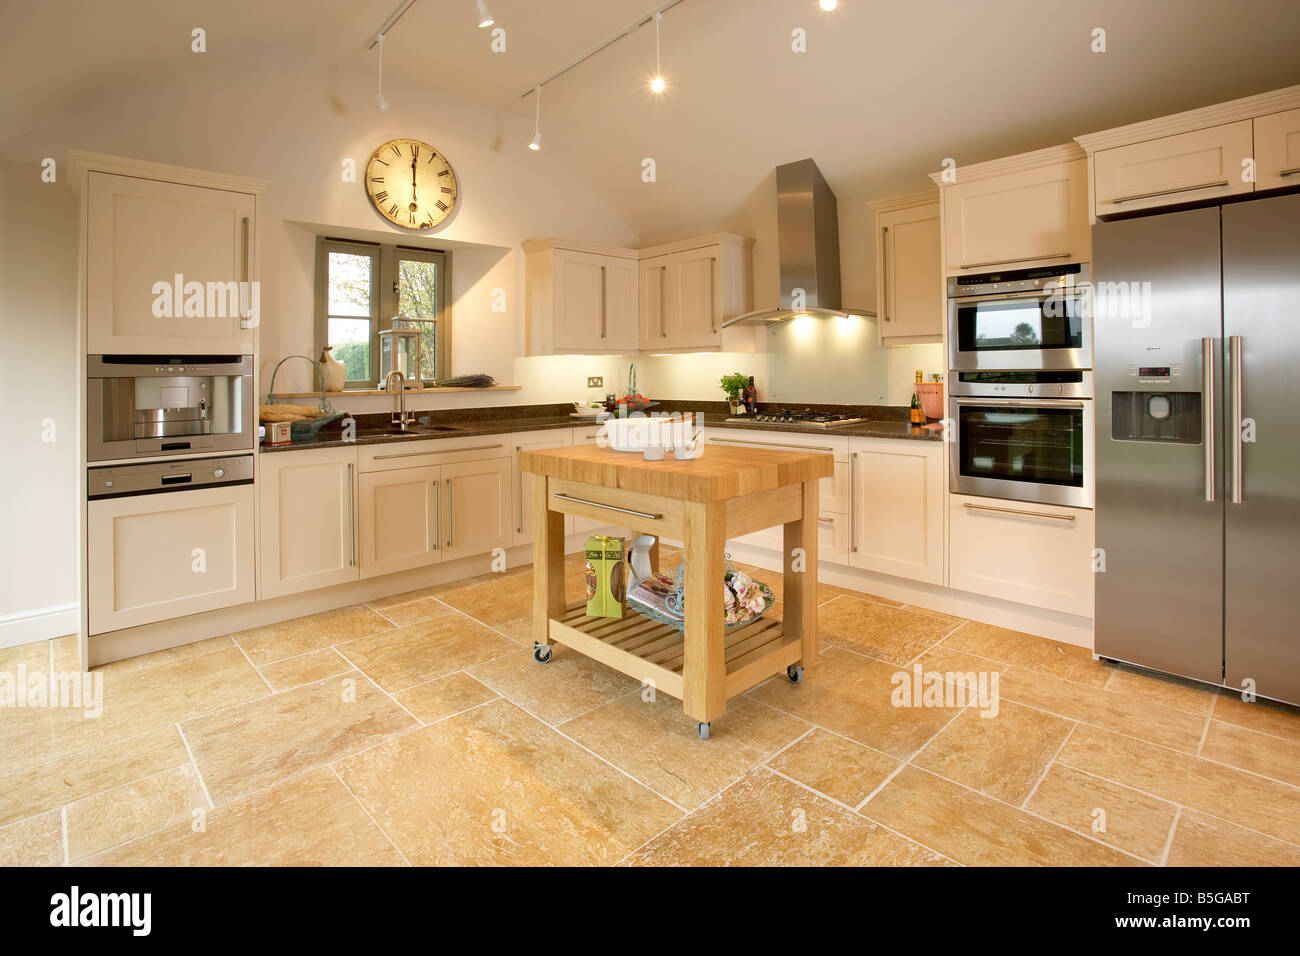 Limestone Kitchen Floor Limestone Floor Stock Photos Limestone Floor Stock Images Alamy